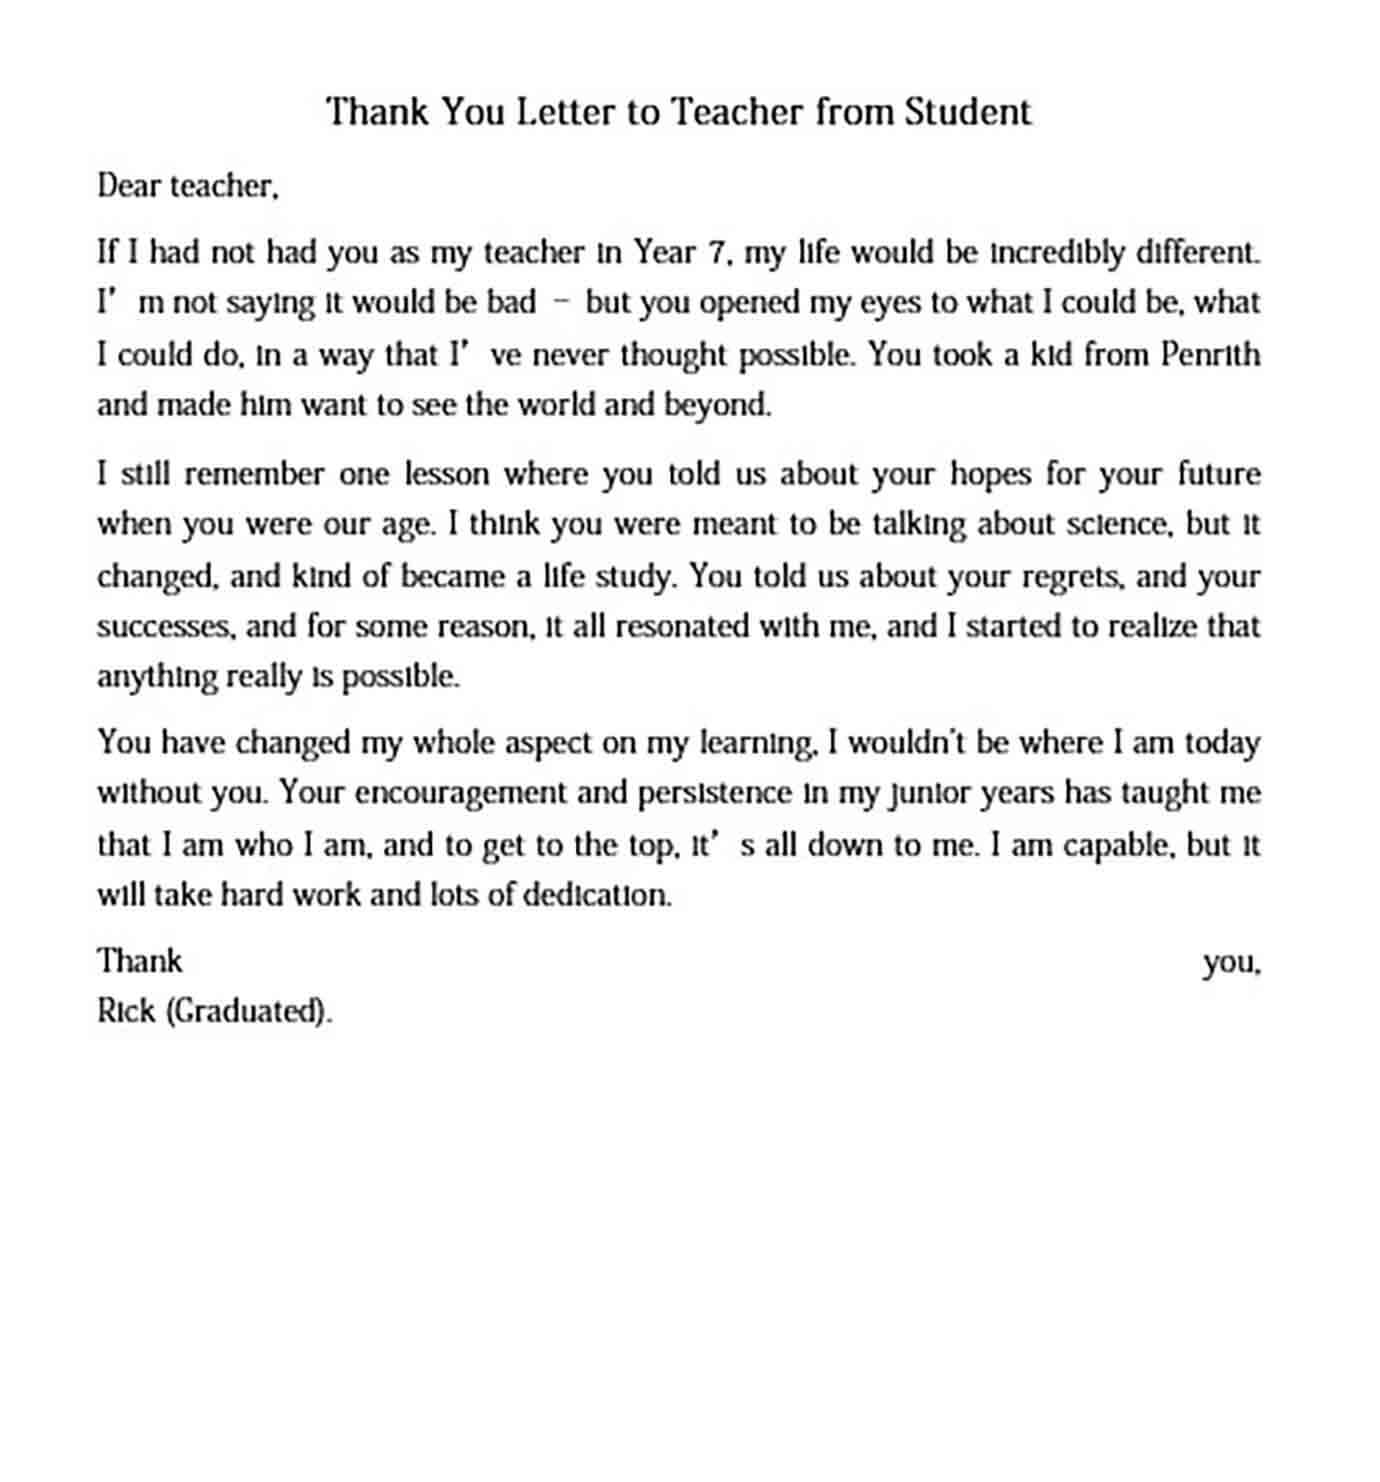 Thank You Letter to Teacher from Student